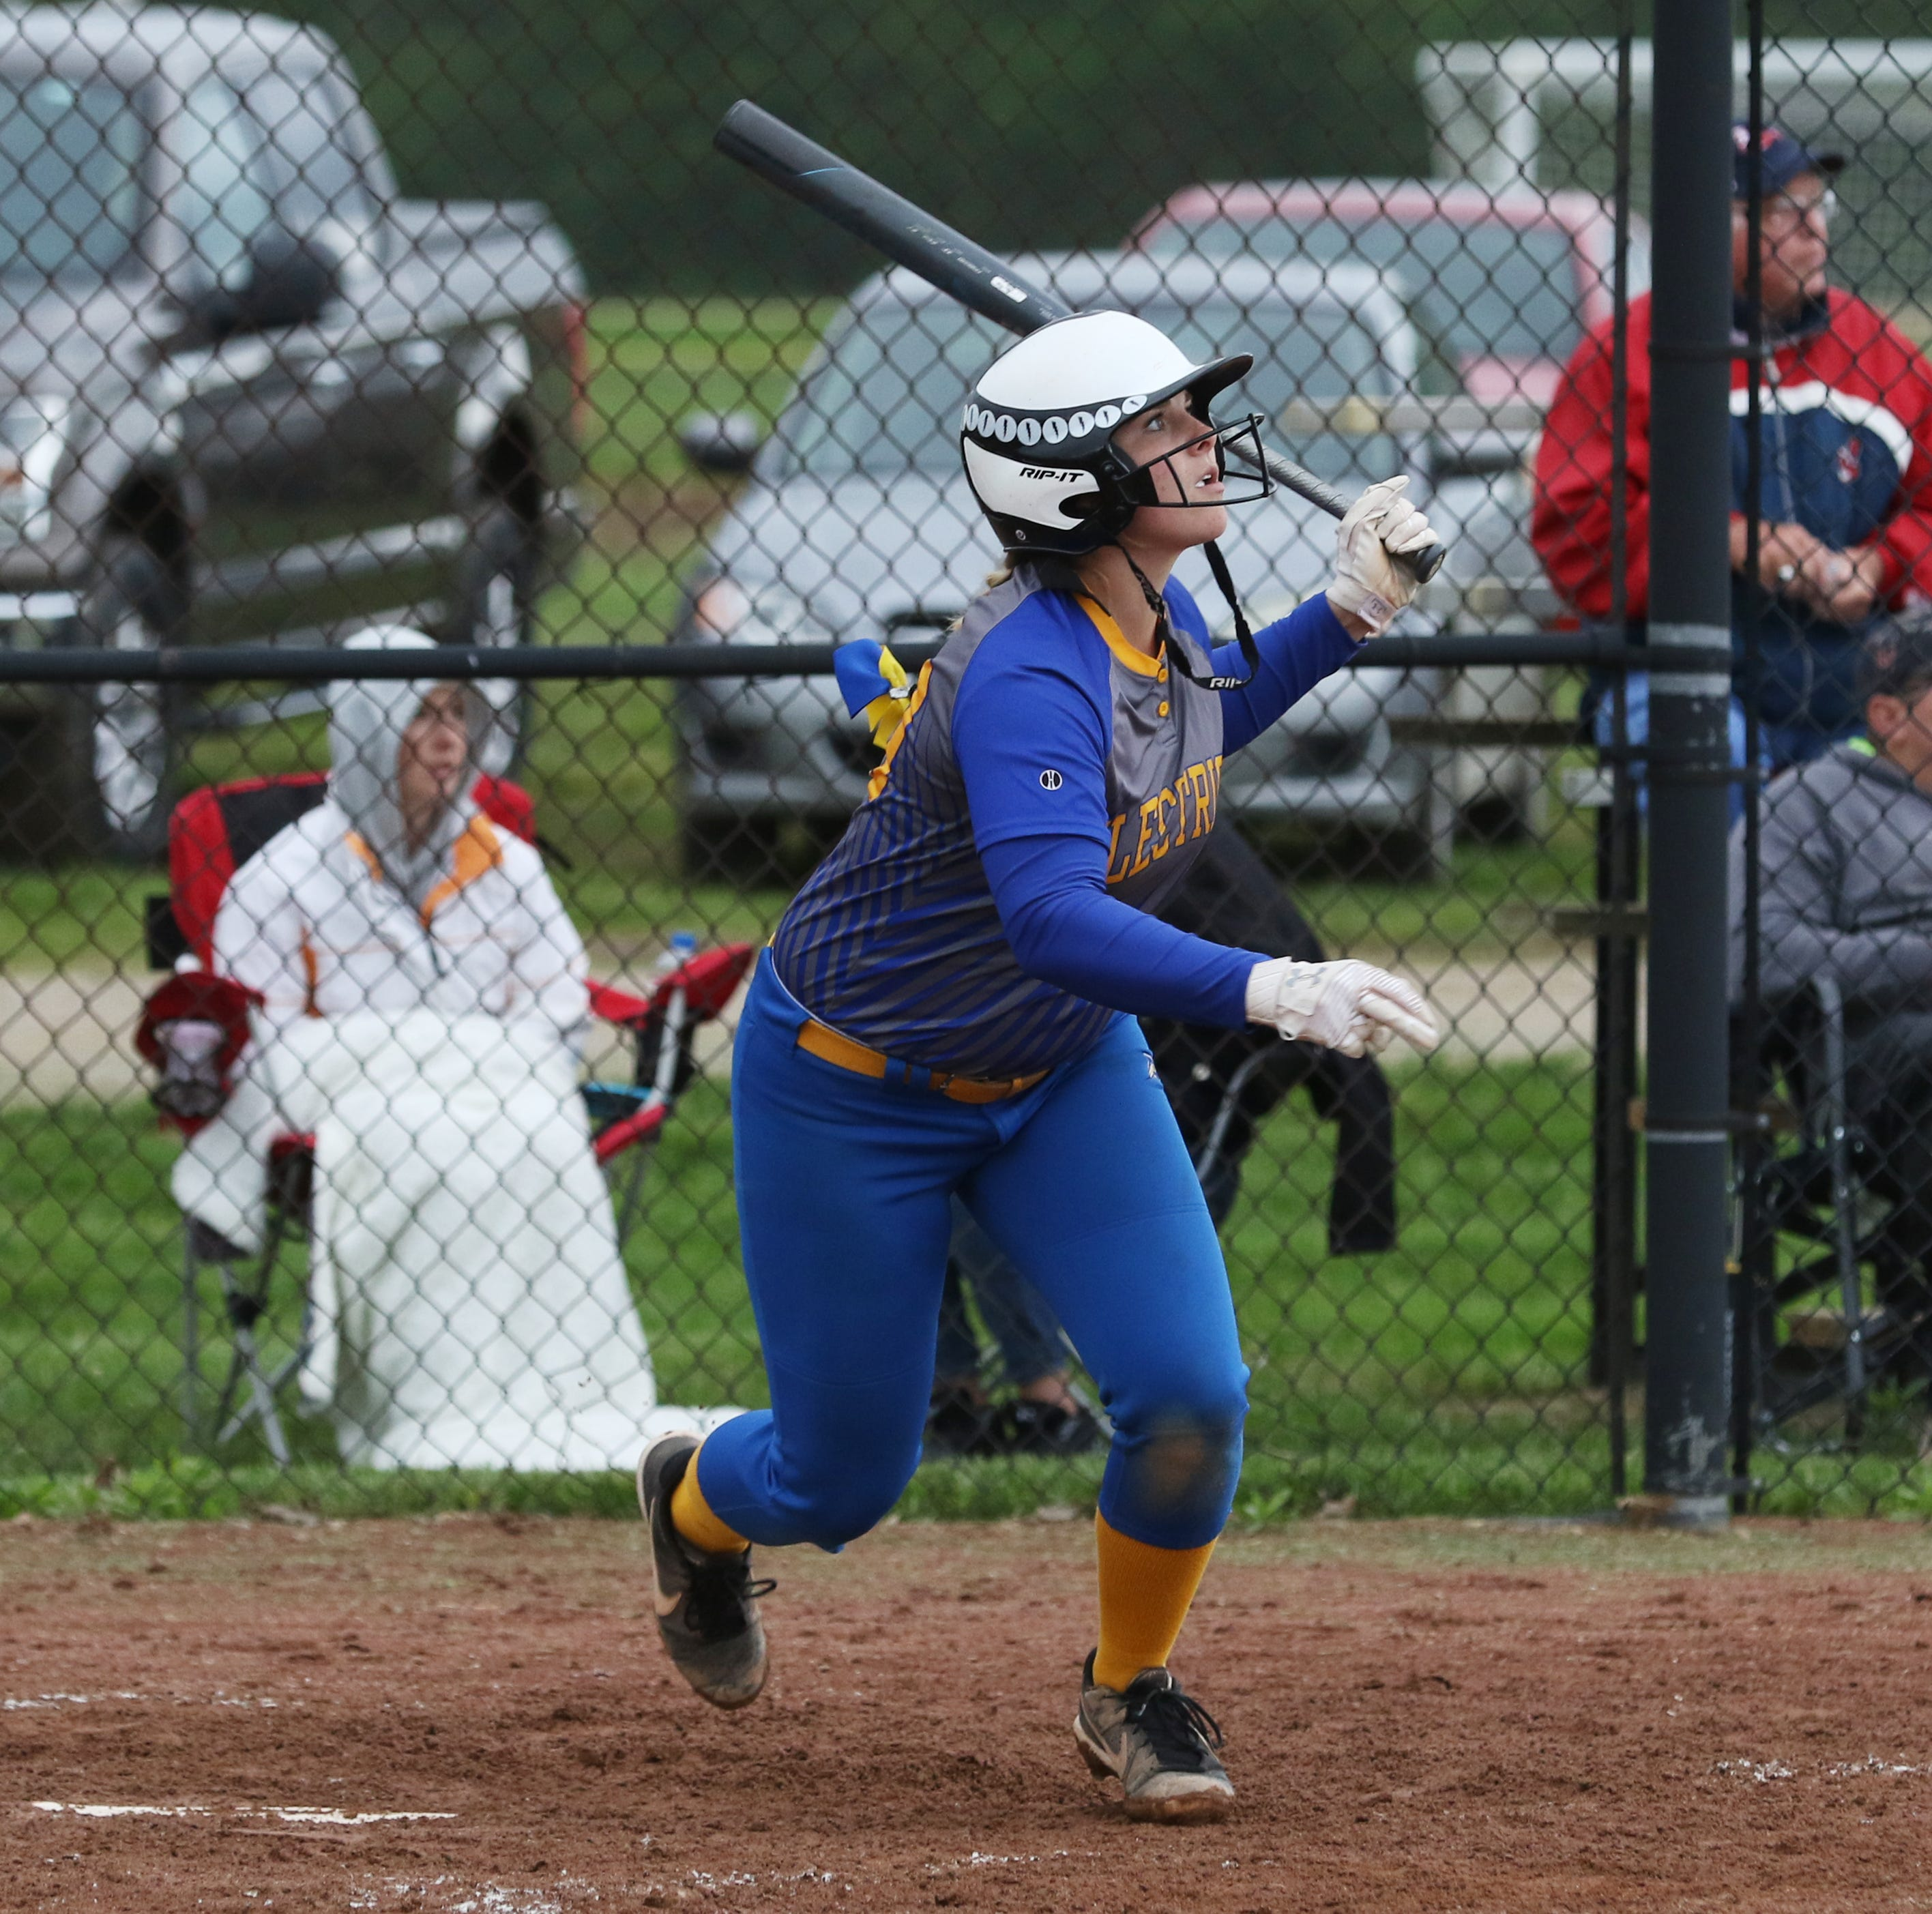 Pride's home run sends Philo past Indian Valley